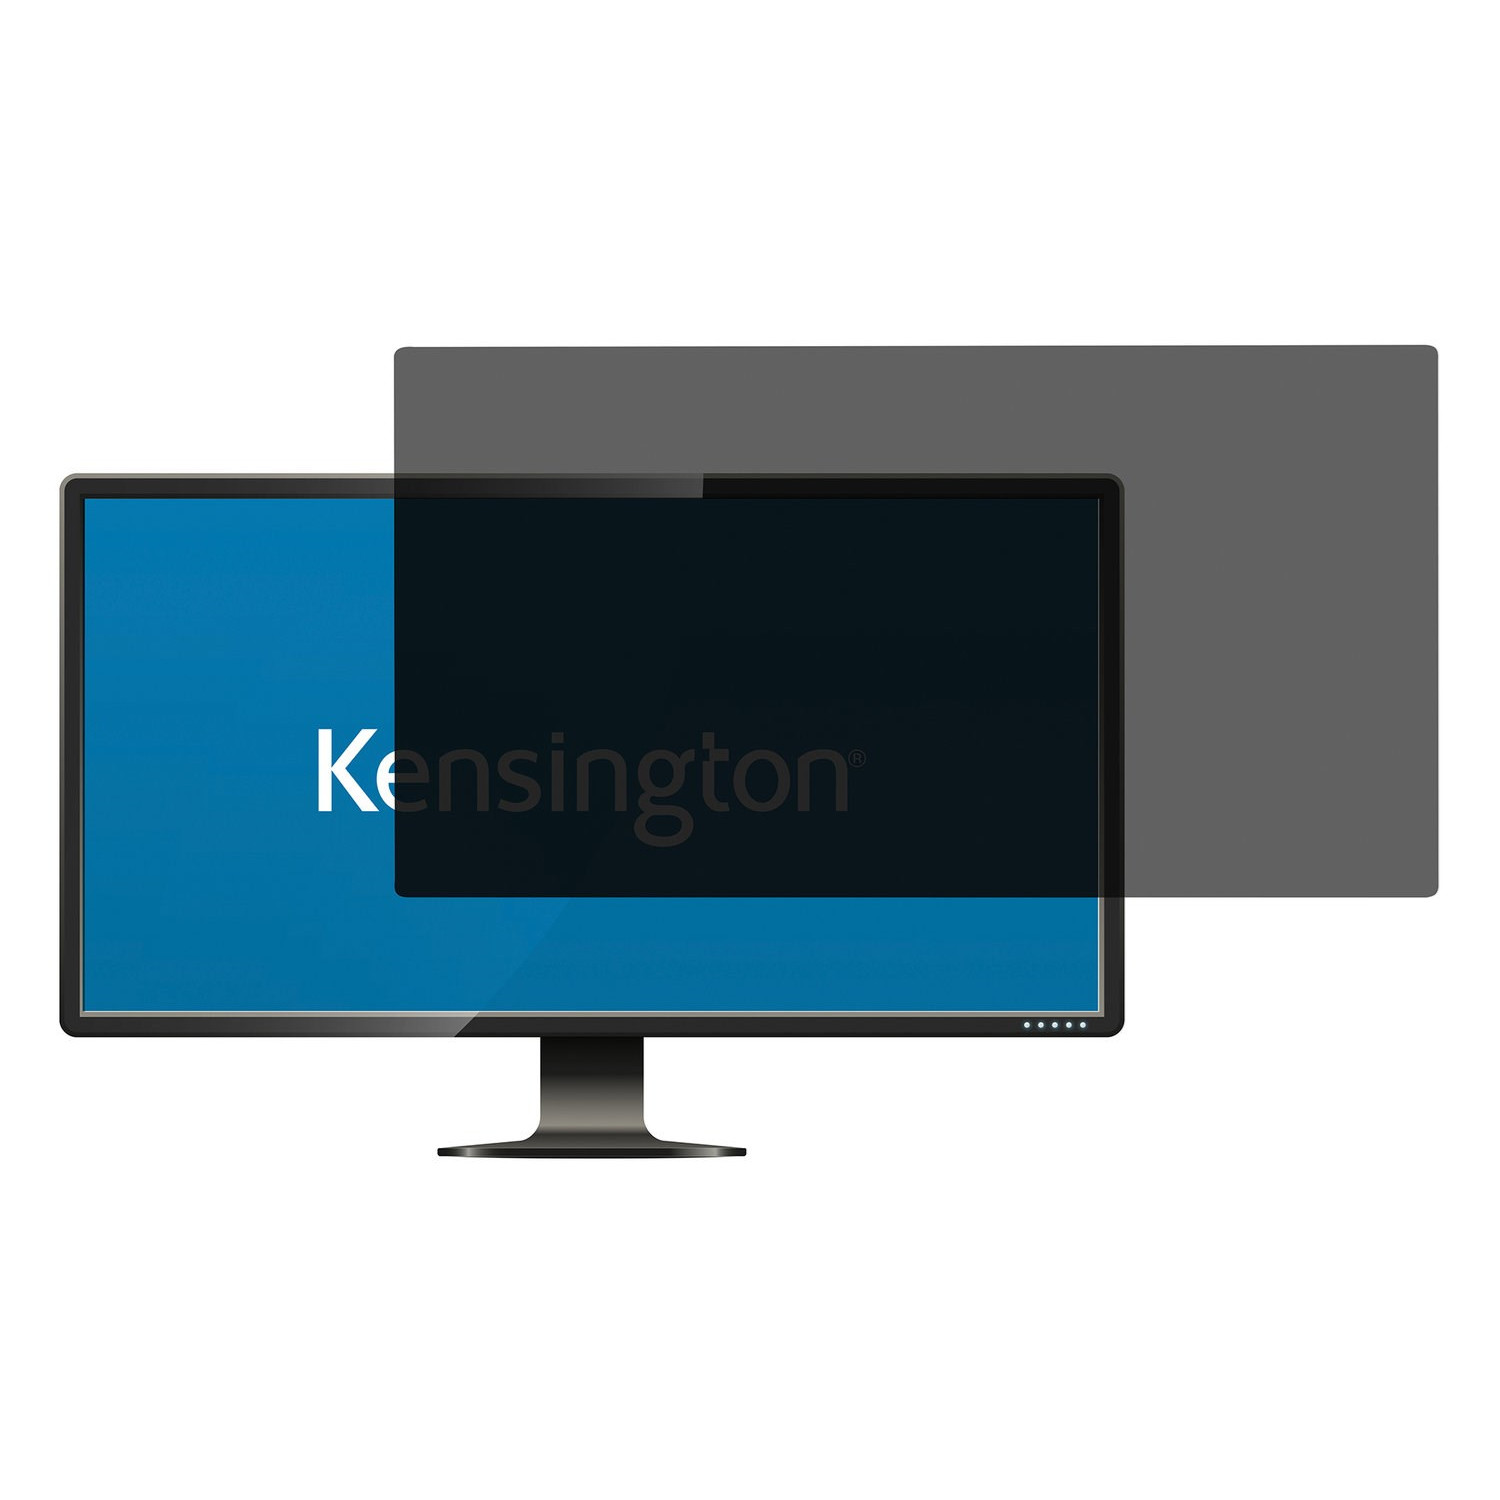 "Kensington privacy filter 2 way removable 50.8cm 20.0"" Wide"